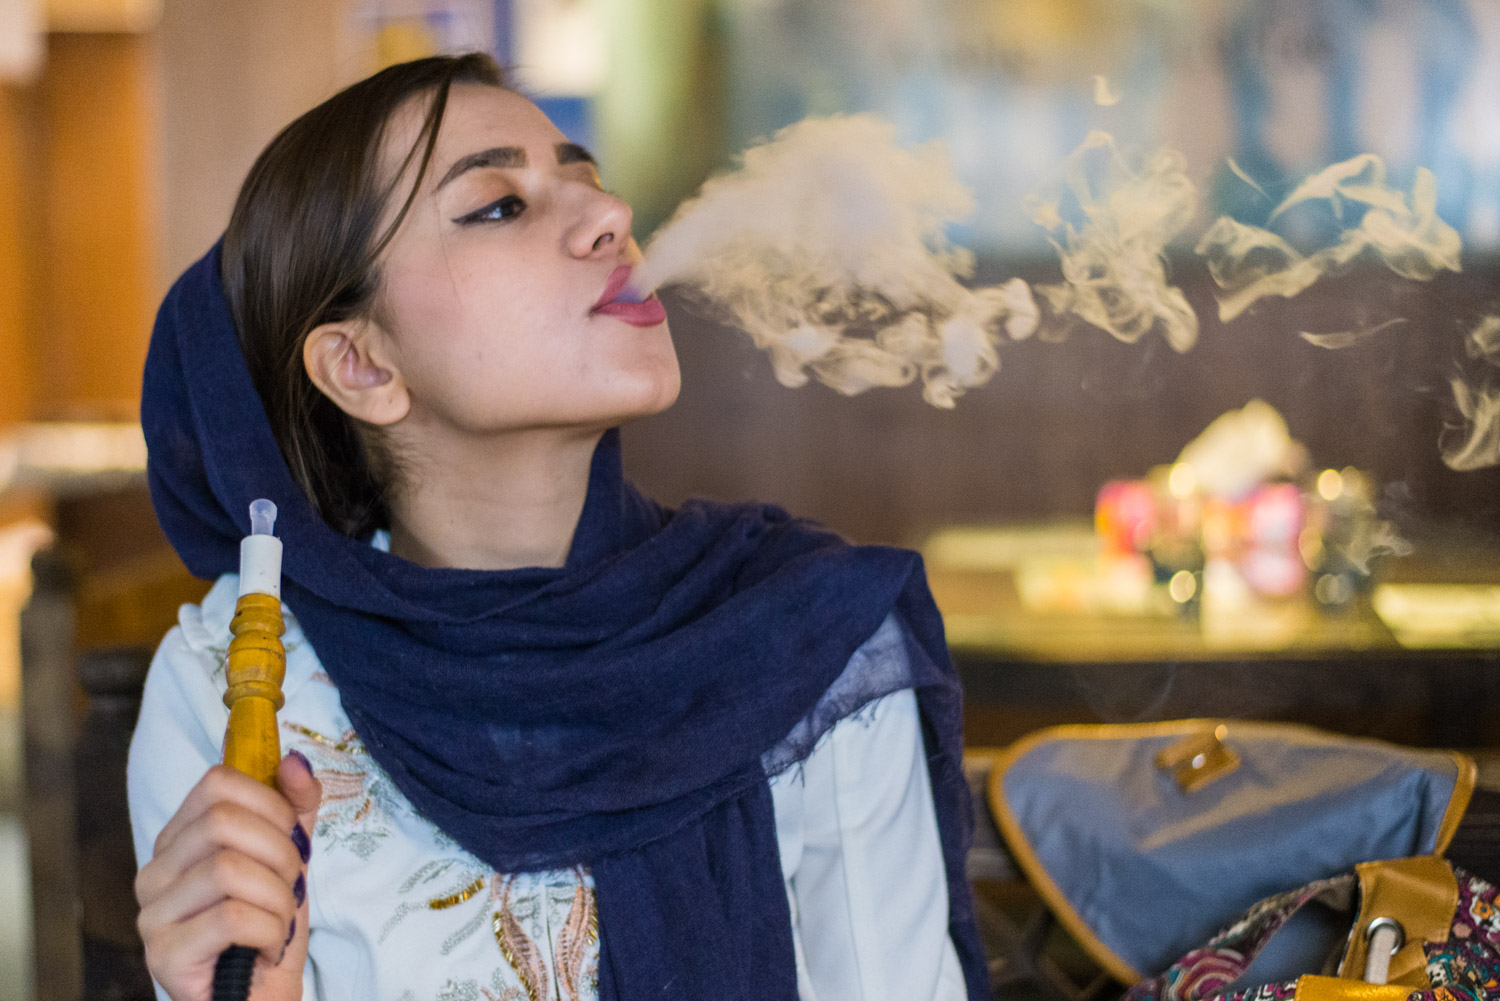 Sheesha smoking is widespread throughout Iran and is finding new popularity among young people. Women frequent coffee shops with friends to smoke, talk and drink tea.